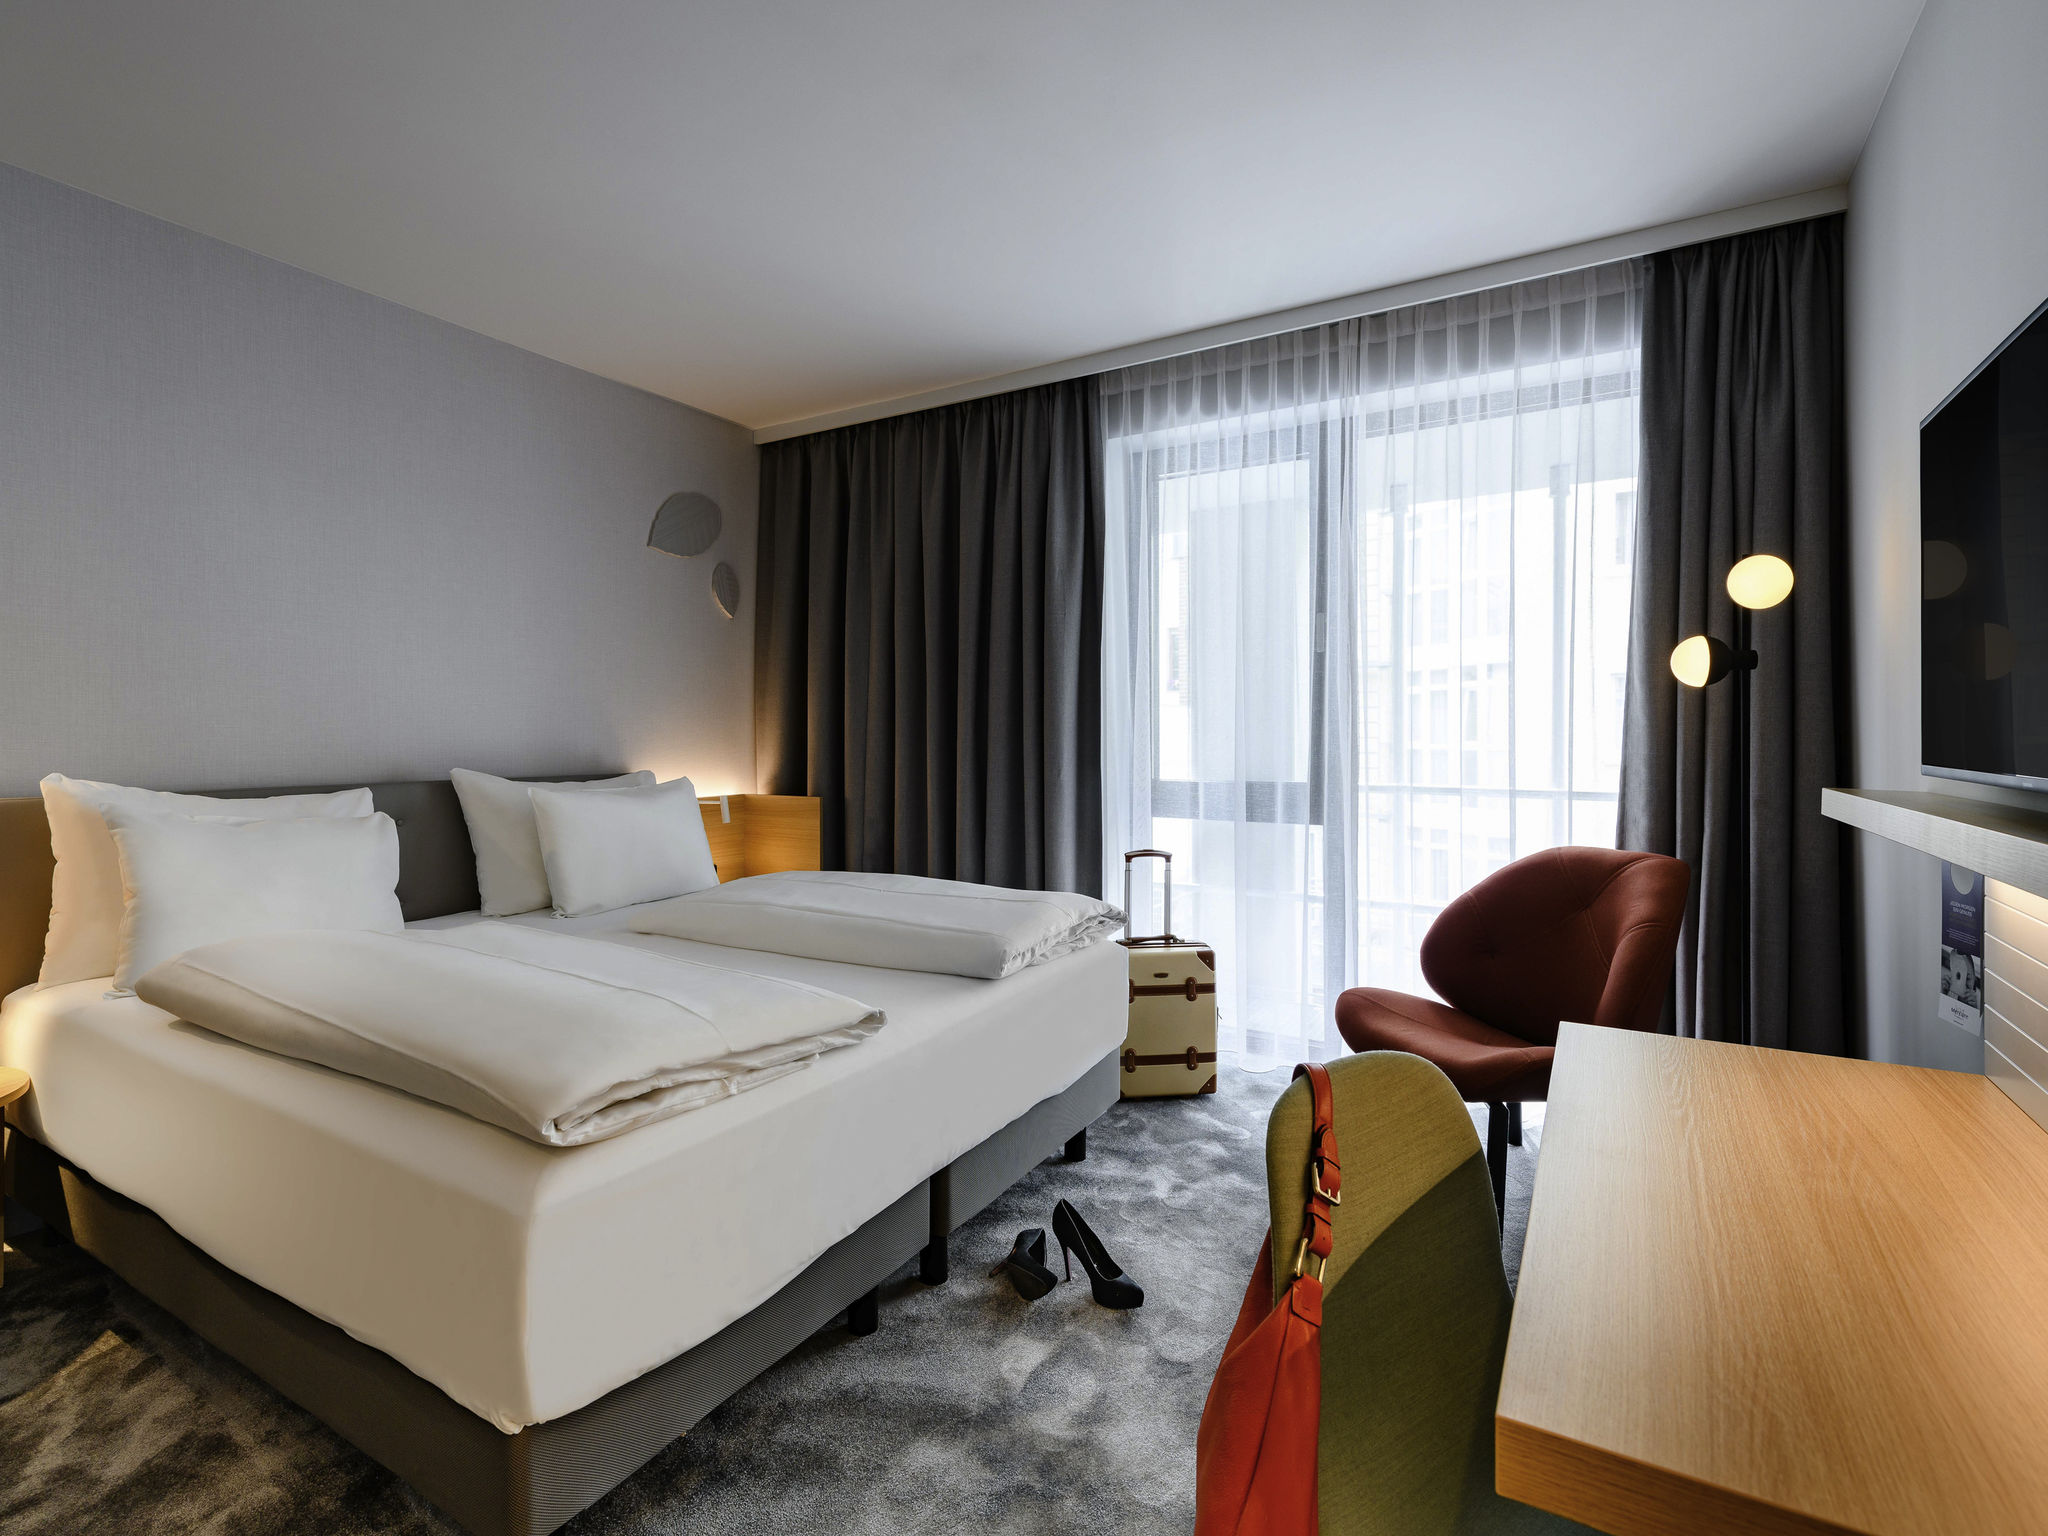 Hotel – Hotel Mercure Munique Schwabing